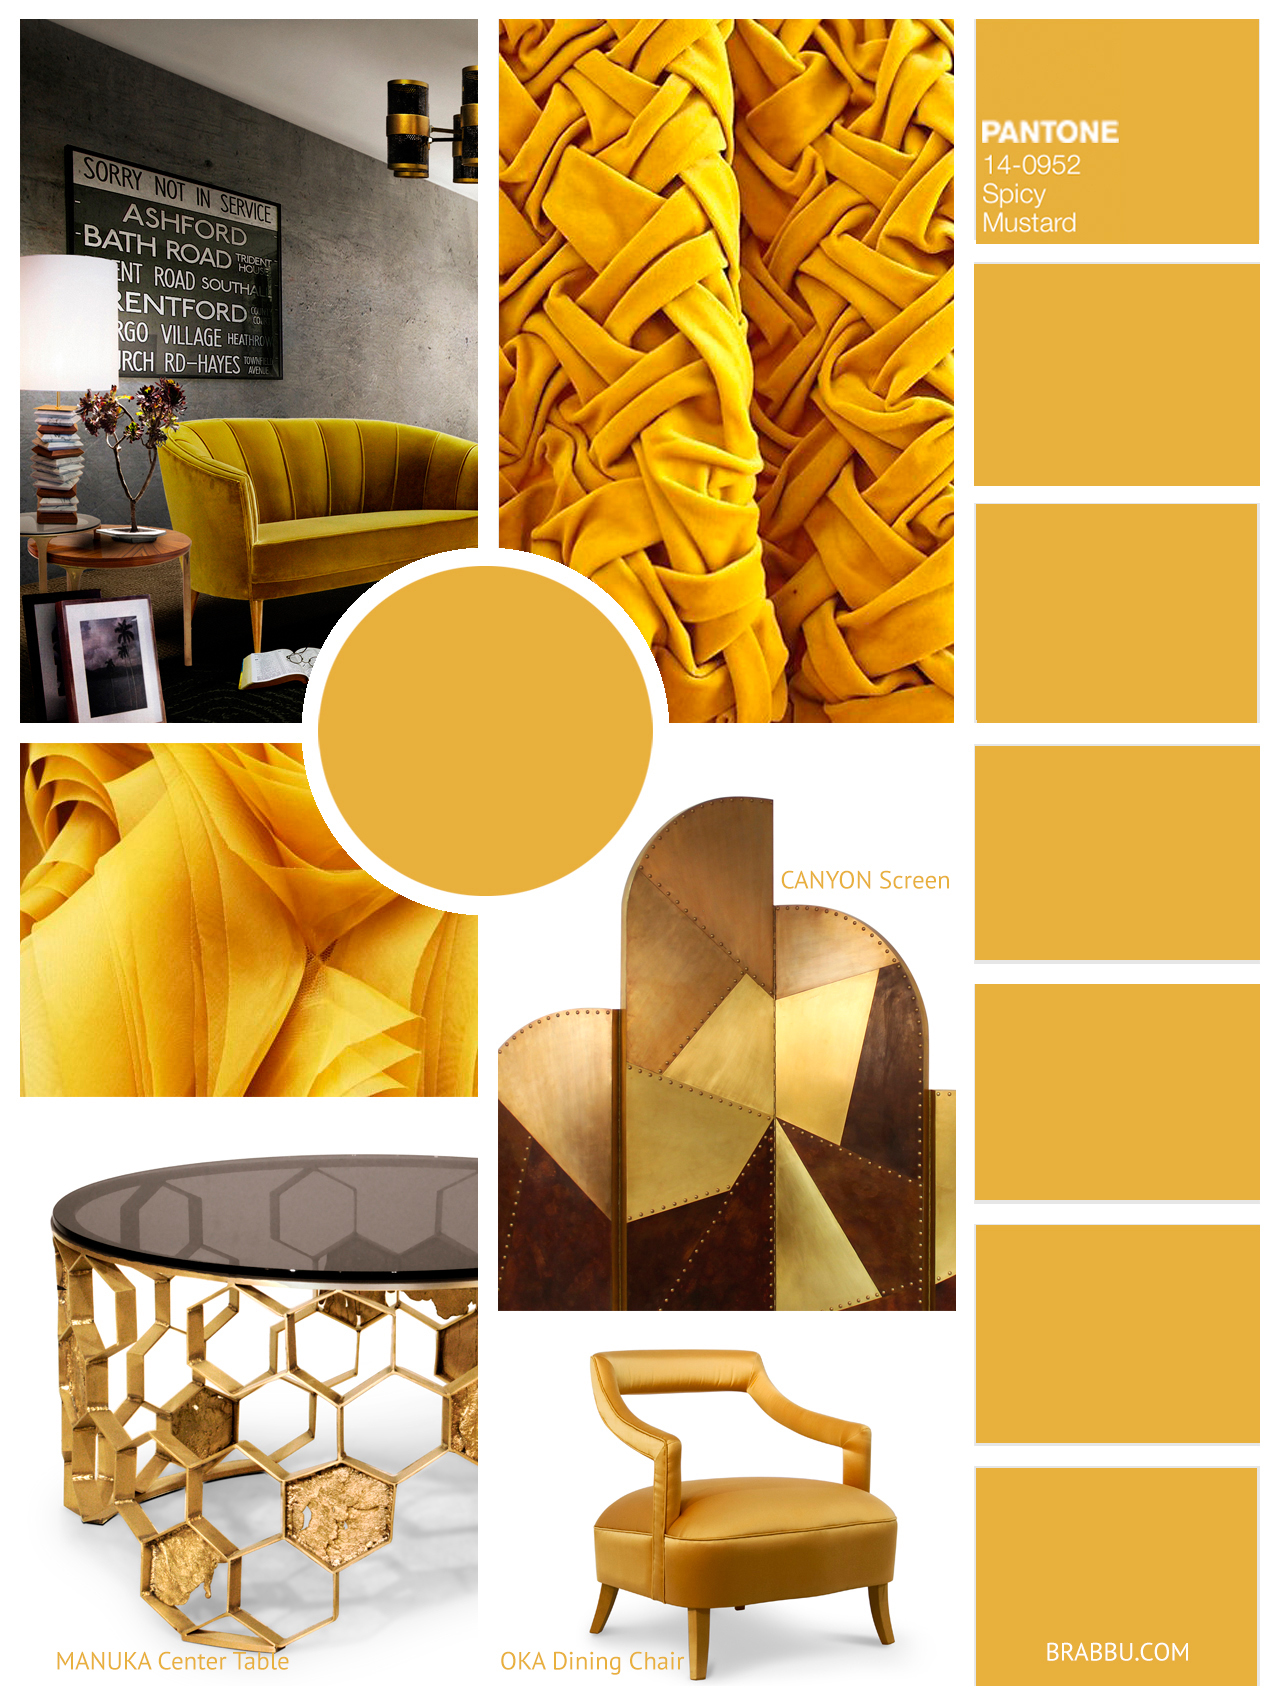 10 Amazing Colorful Chairs for A Chic Home 10 Amazing Colorful Chairs for A Chic Home moodboard by brabbu 16 HR